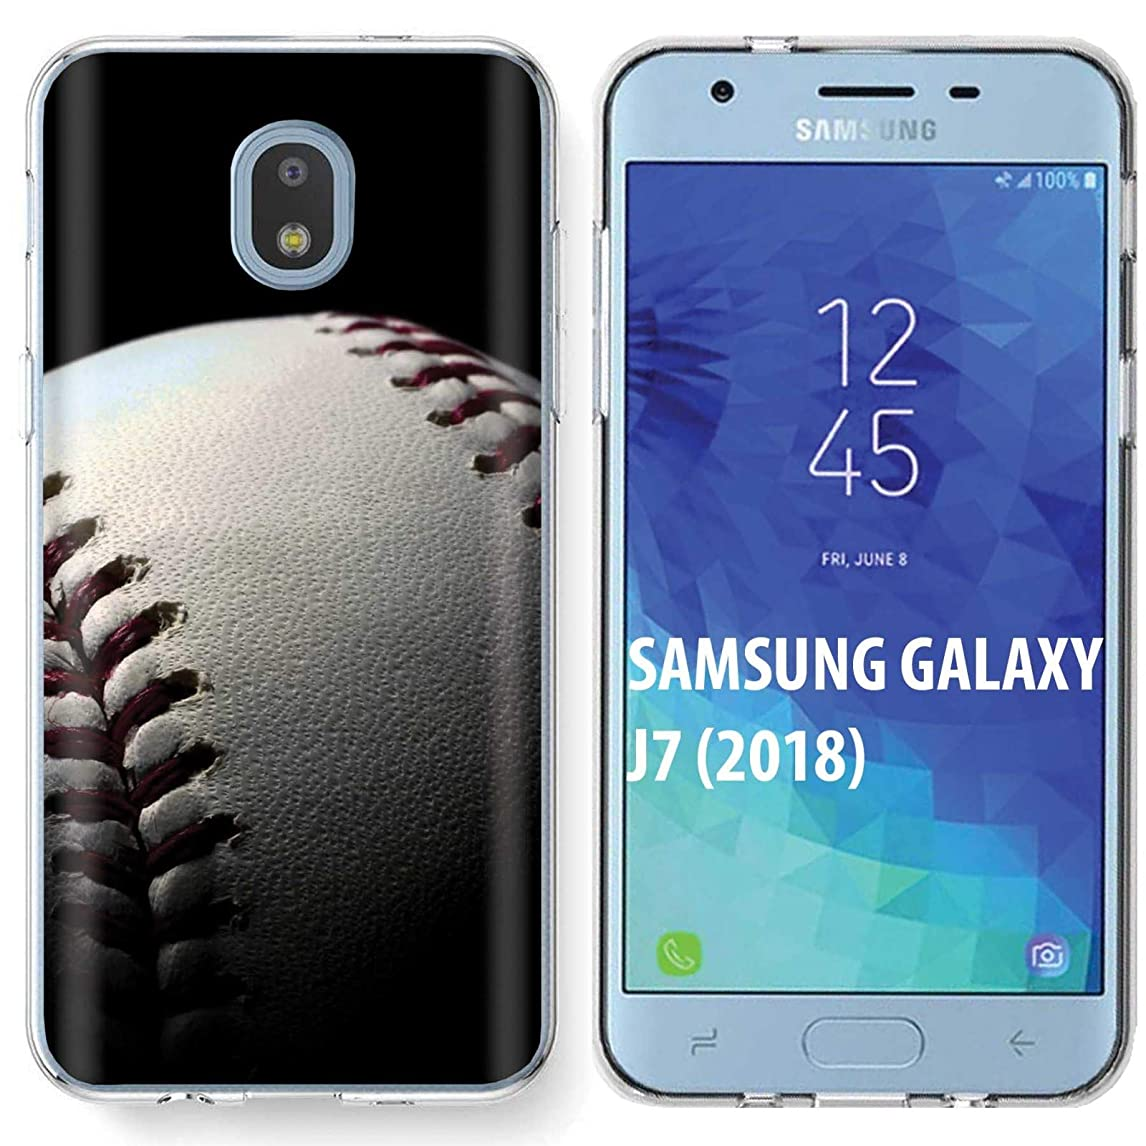 [NakedShield] Samsung Galaxy (J7 2018)/J7 Aero/J7 Refine/J7 Star/J737/J7 V 2nd Gen [Clear] Ultra Slim TPU Phone Cover Case [Baseball Print] bnnwt84298539038